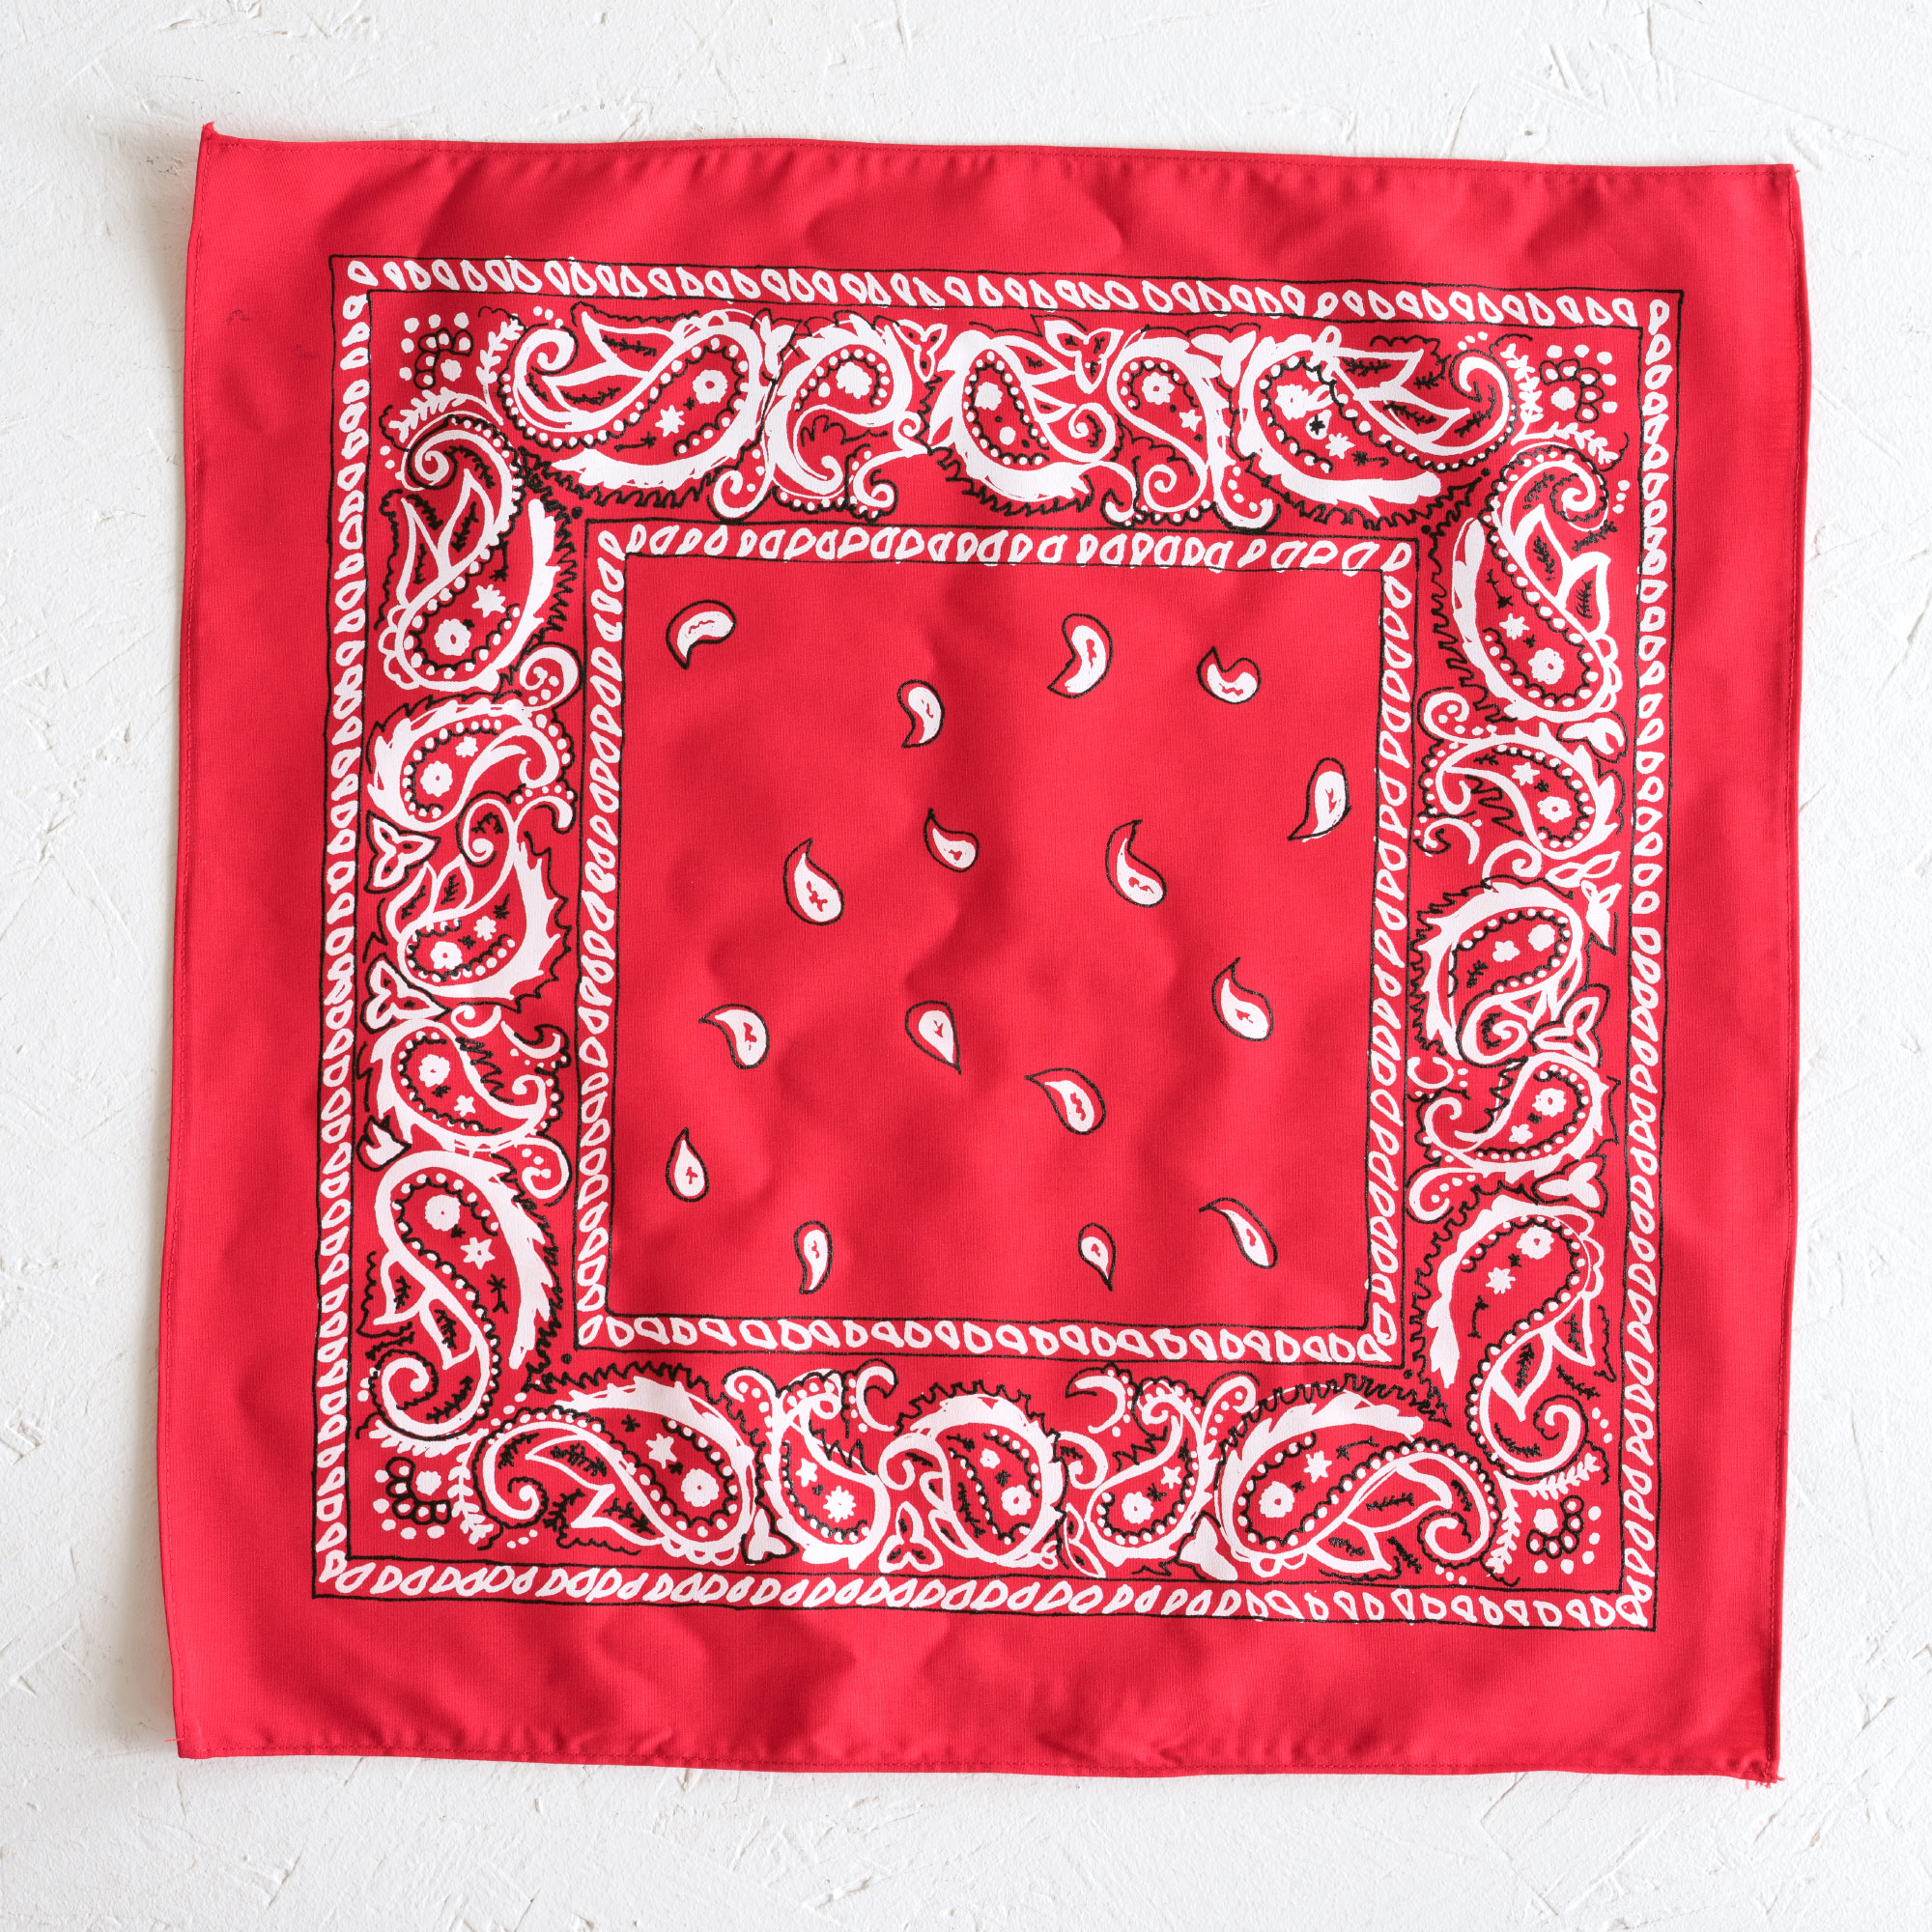 Nancy Davidson, *Hanky Code* (Red), 2016, Two color silkscreen on hand cut & sewn cotton, 17 x 17 inches (43.18 x 43.18 cm)